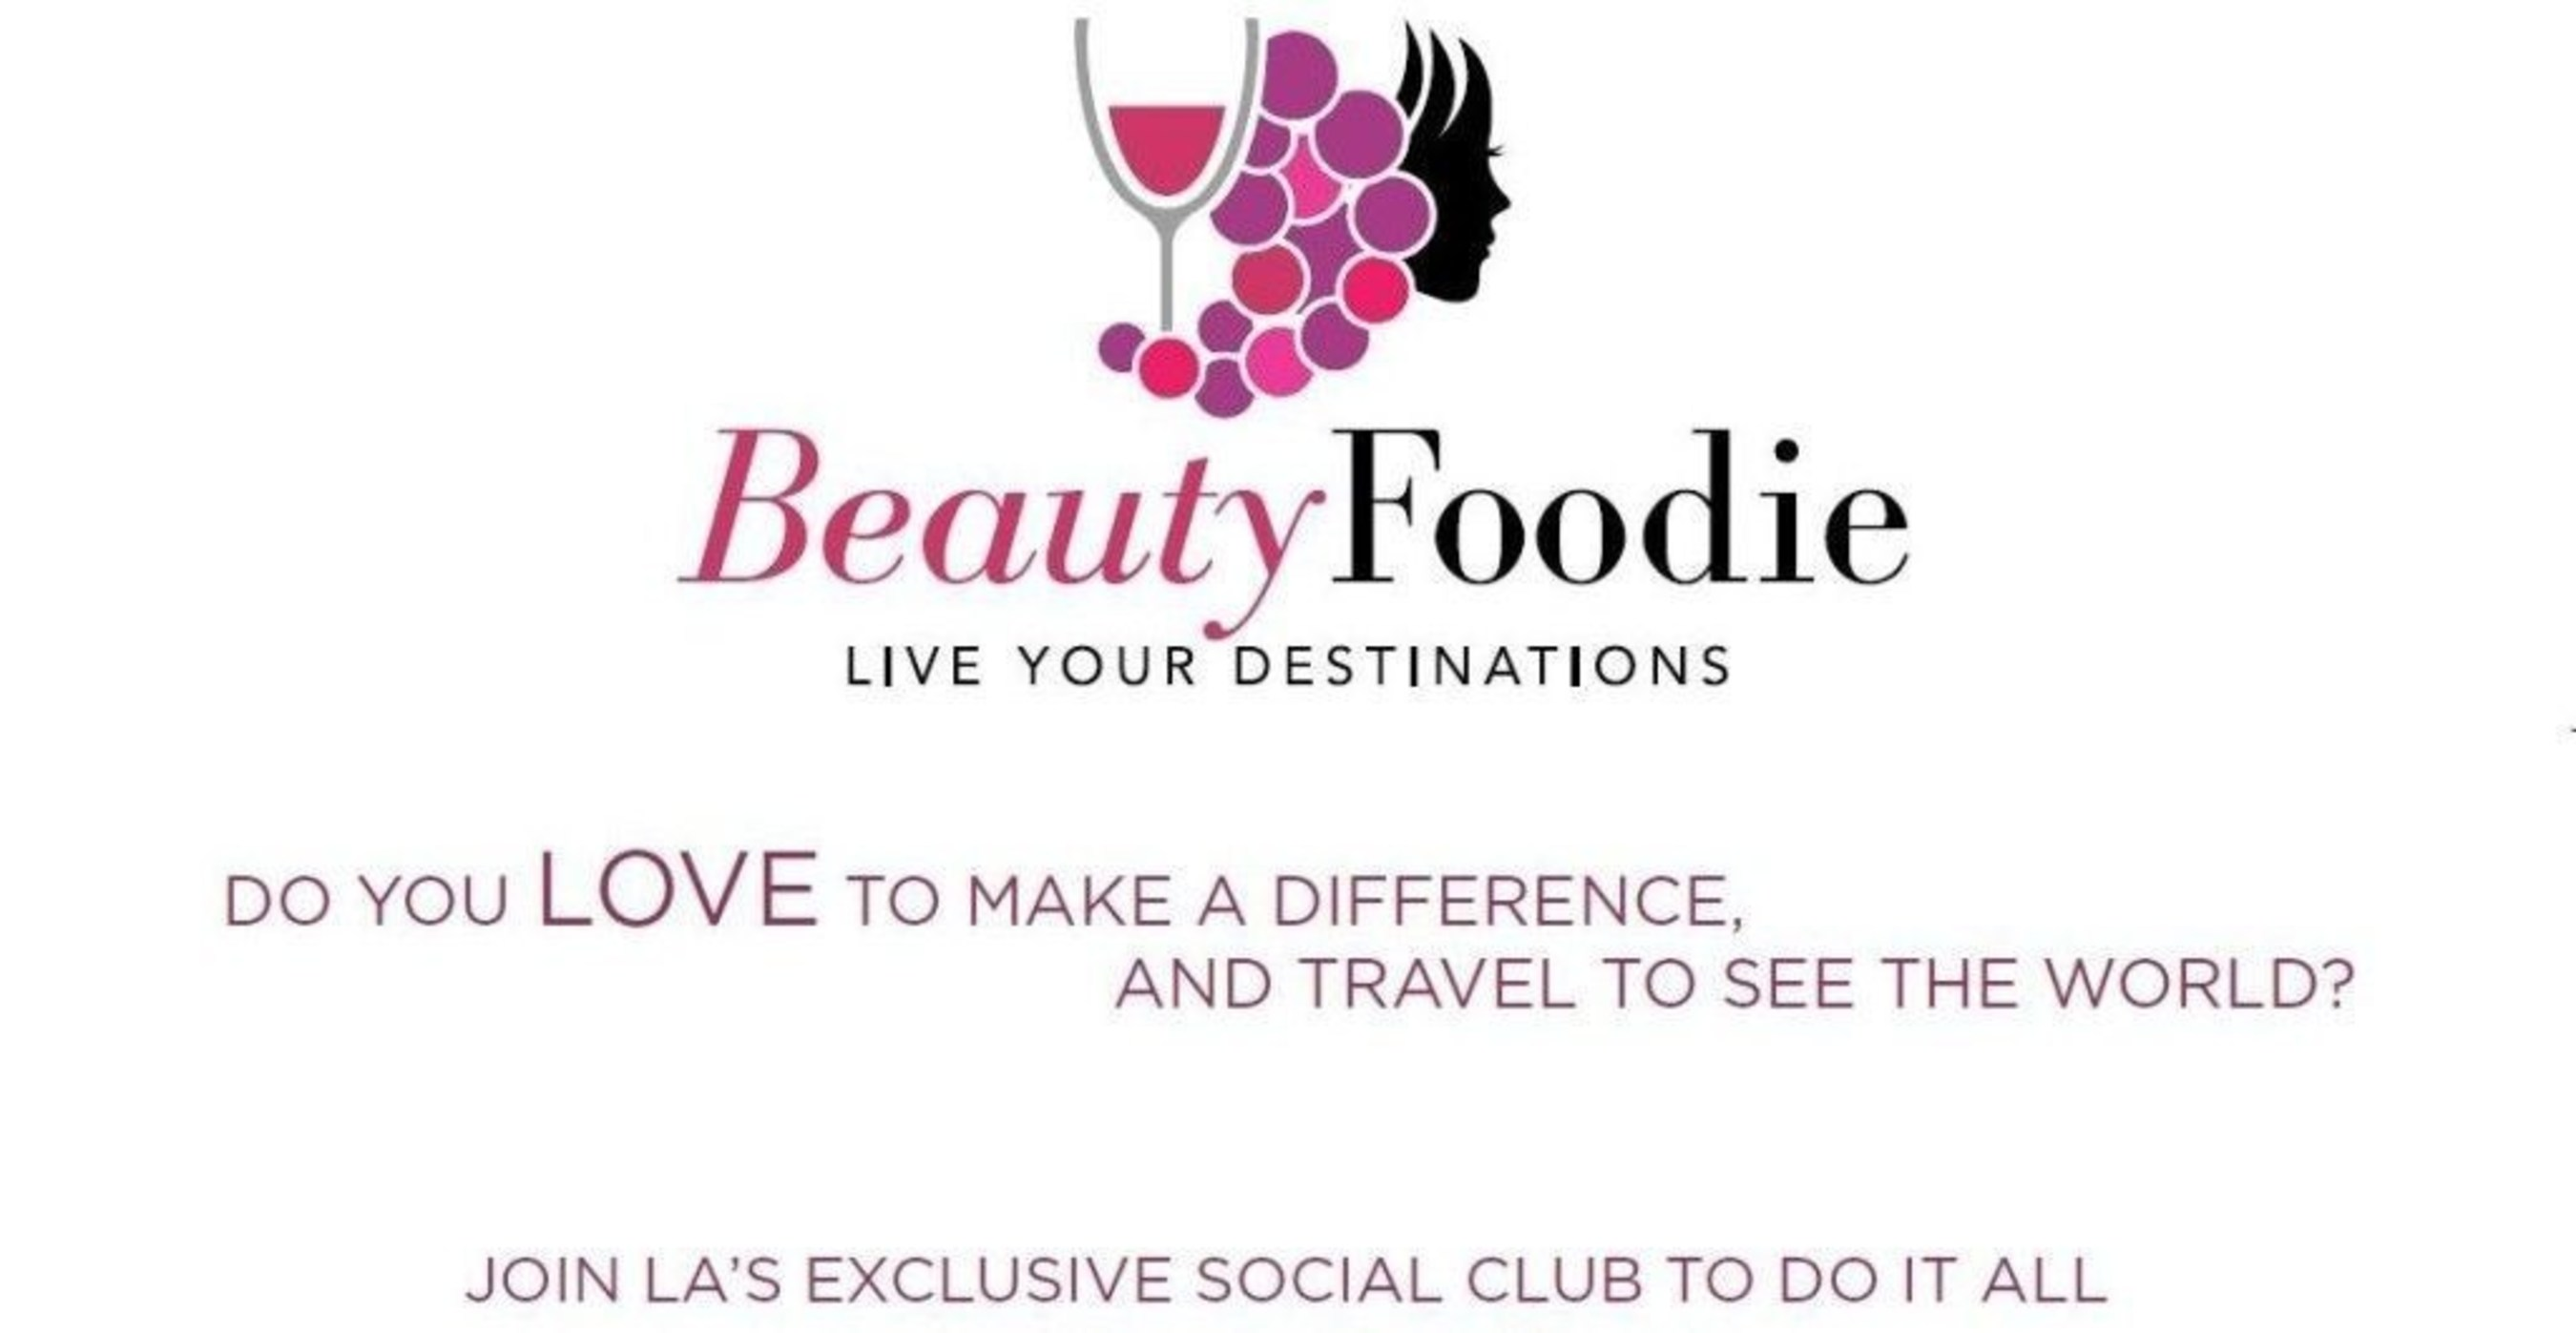 Beauty Foodie Social Club Launches in L.A. to Save Women Money on Travel